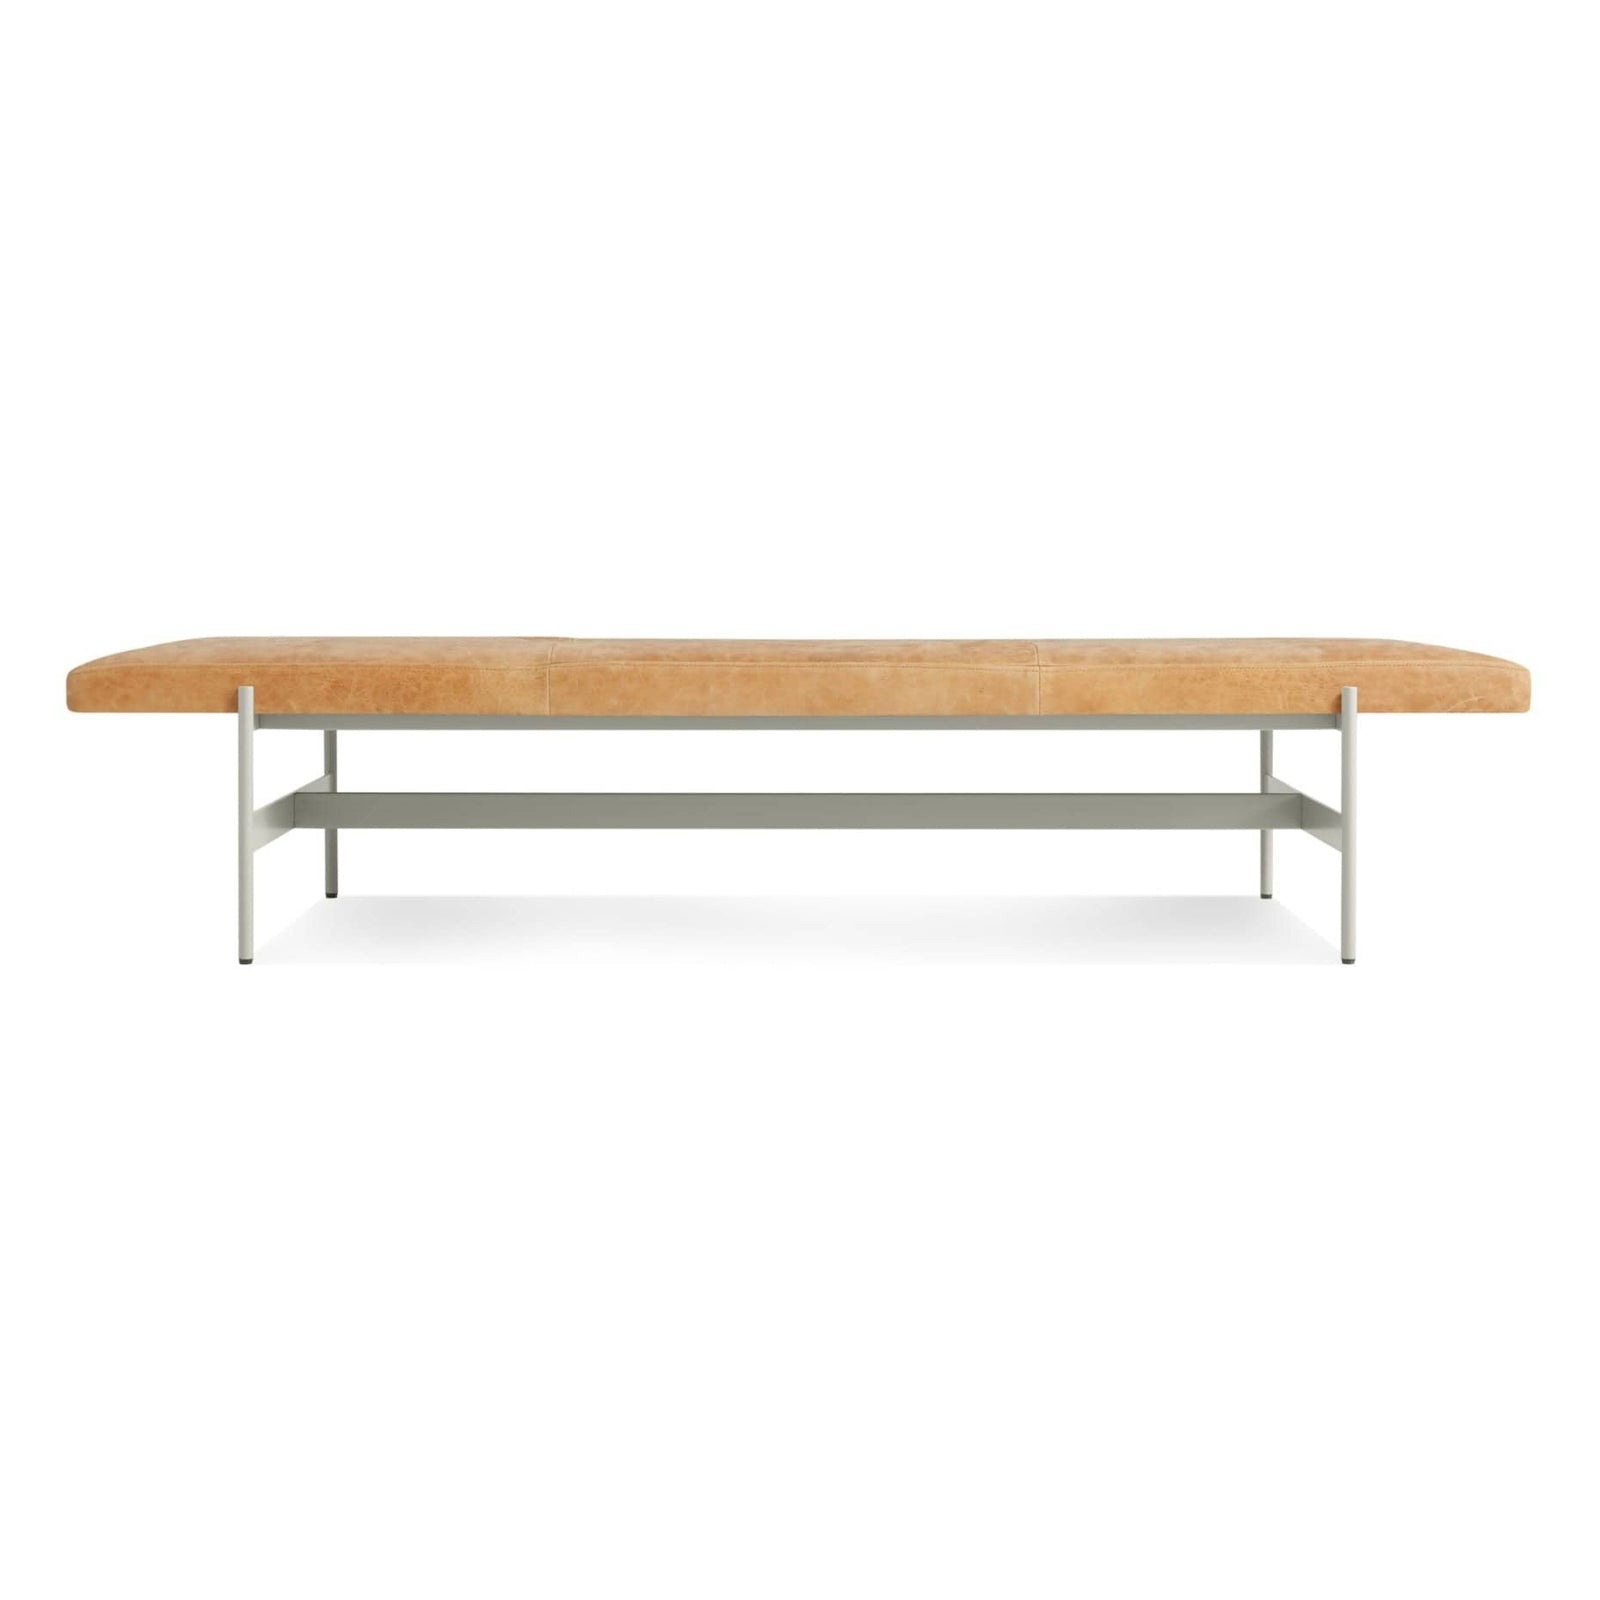 "Blu Dot Furniture 75"" / Camel Leather / Putty Daybench"